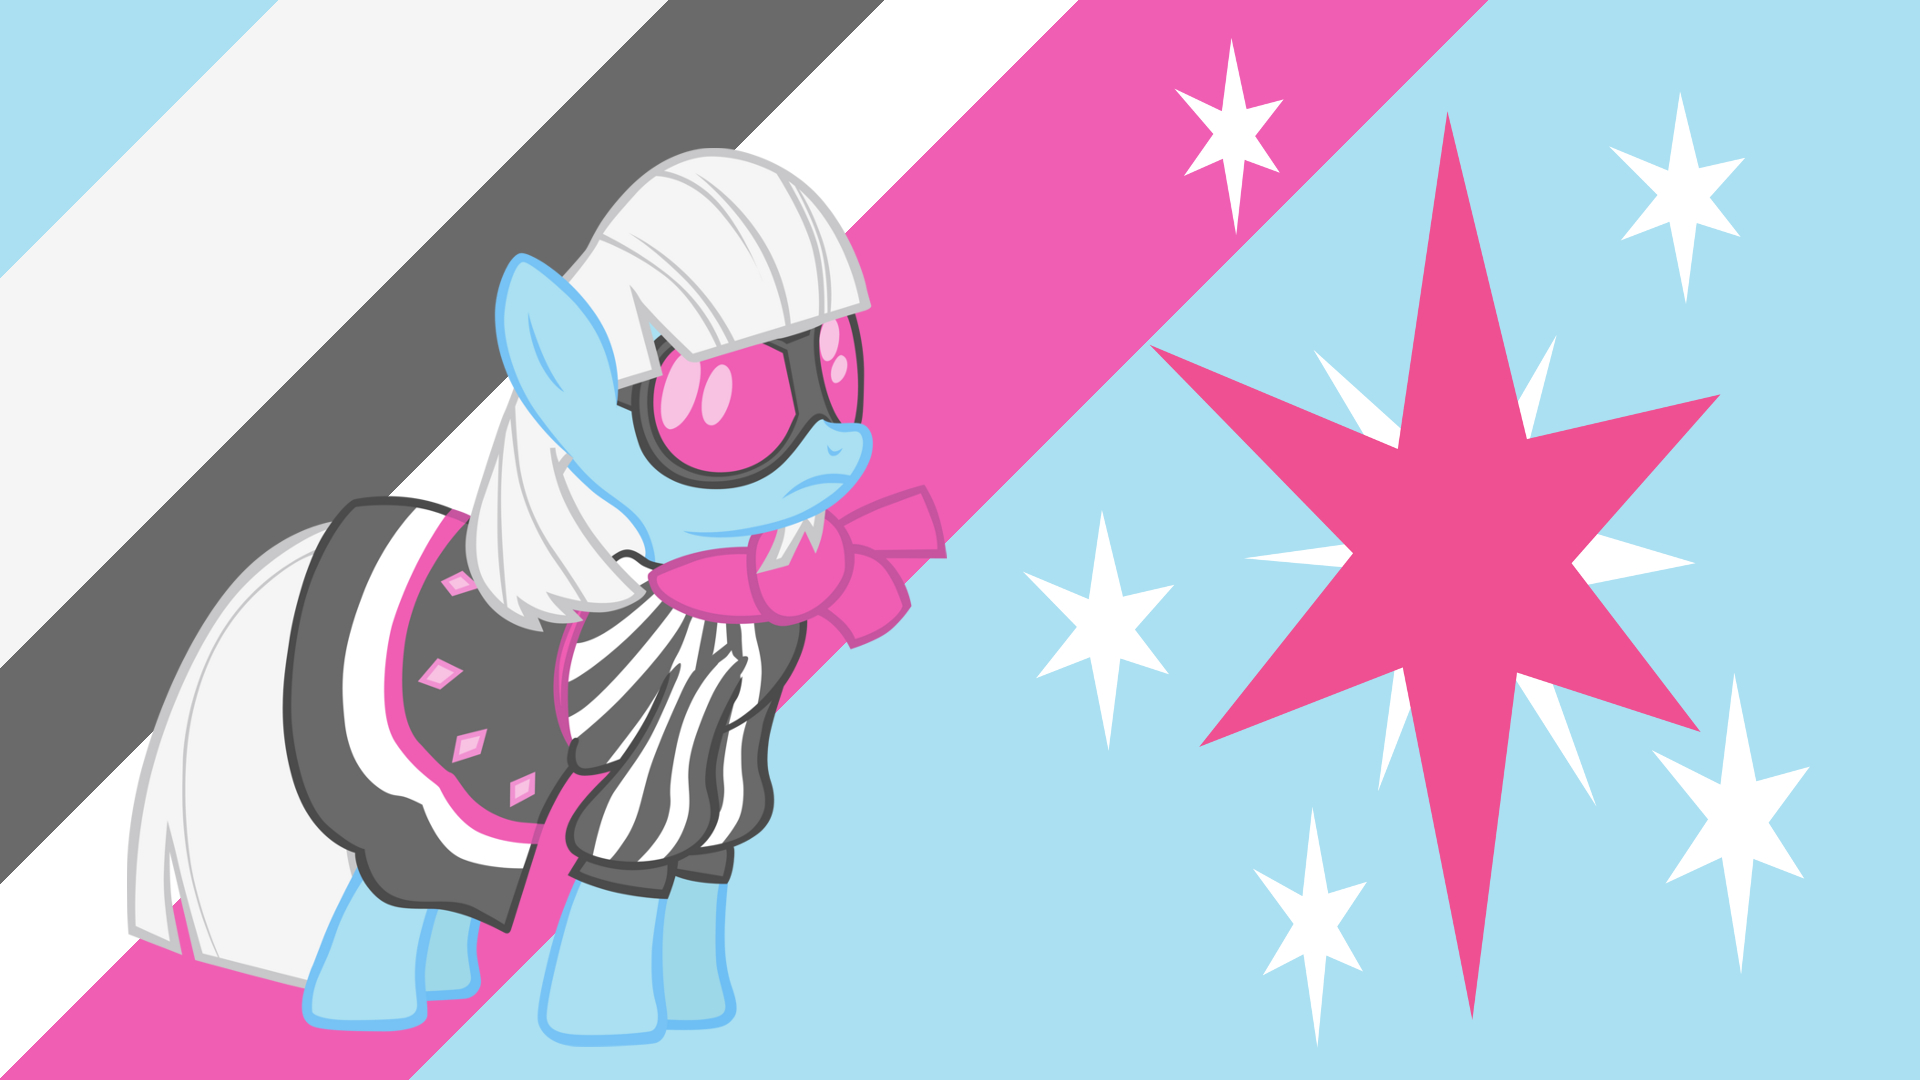 Minimalist Wallpaper 46: Photo Finish by BlackGryph0n, ShelltoonTV and Softfang